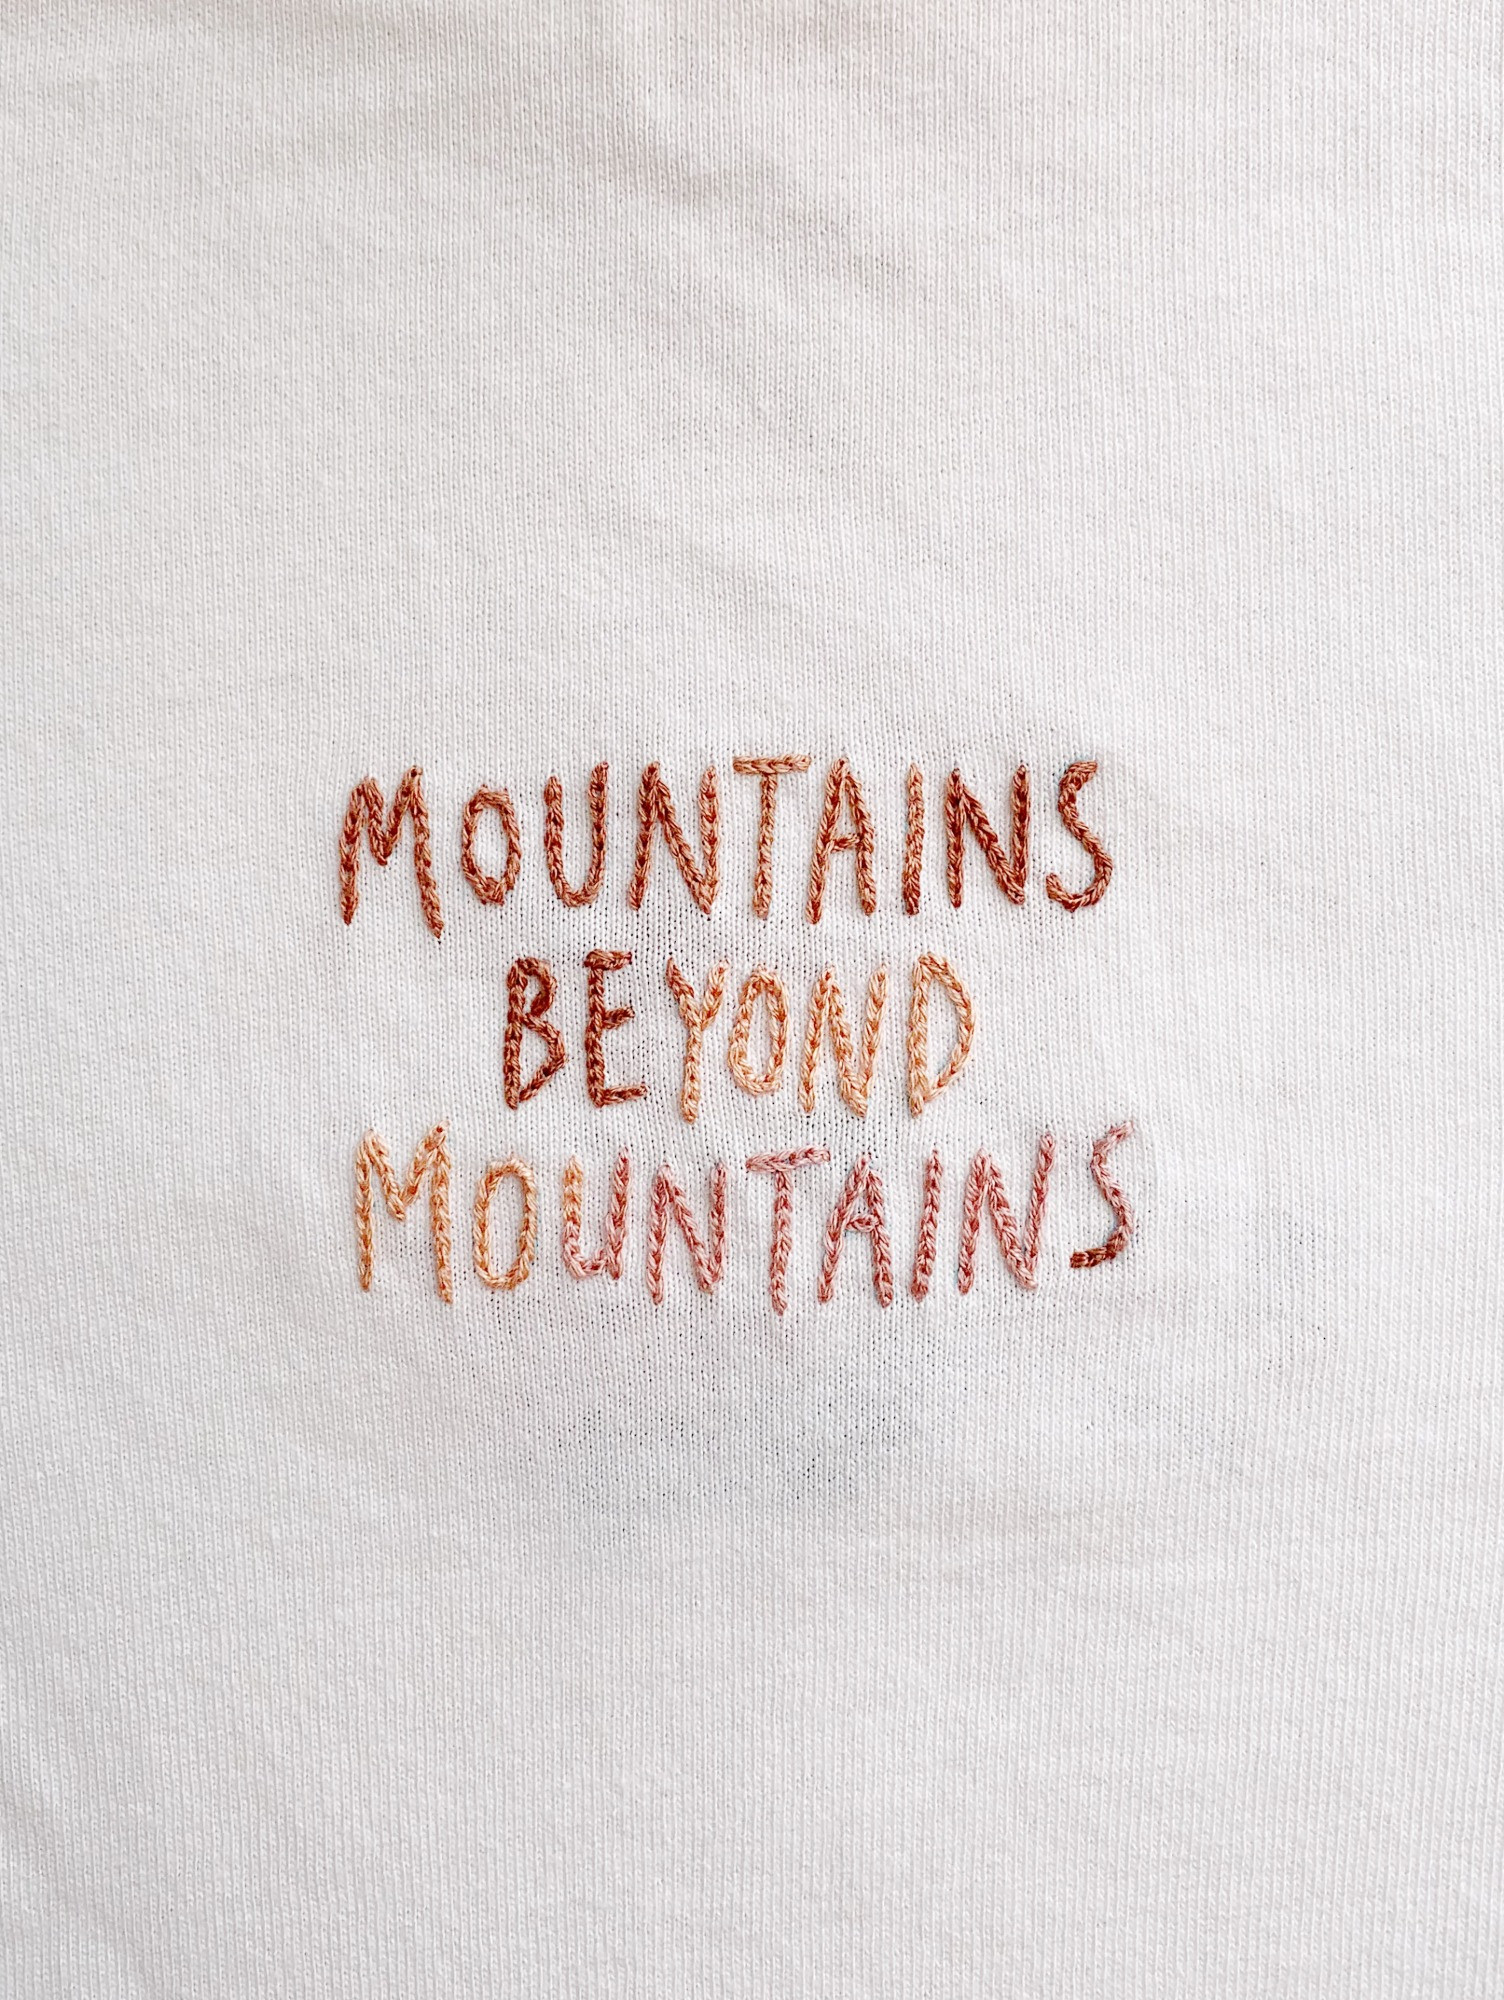 2020_Mountains embroidery tee_05